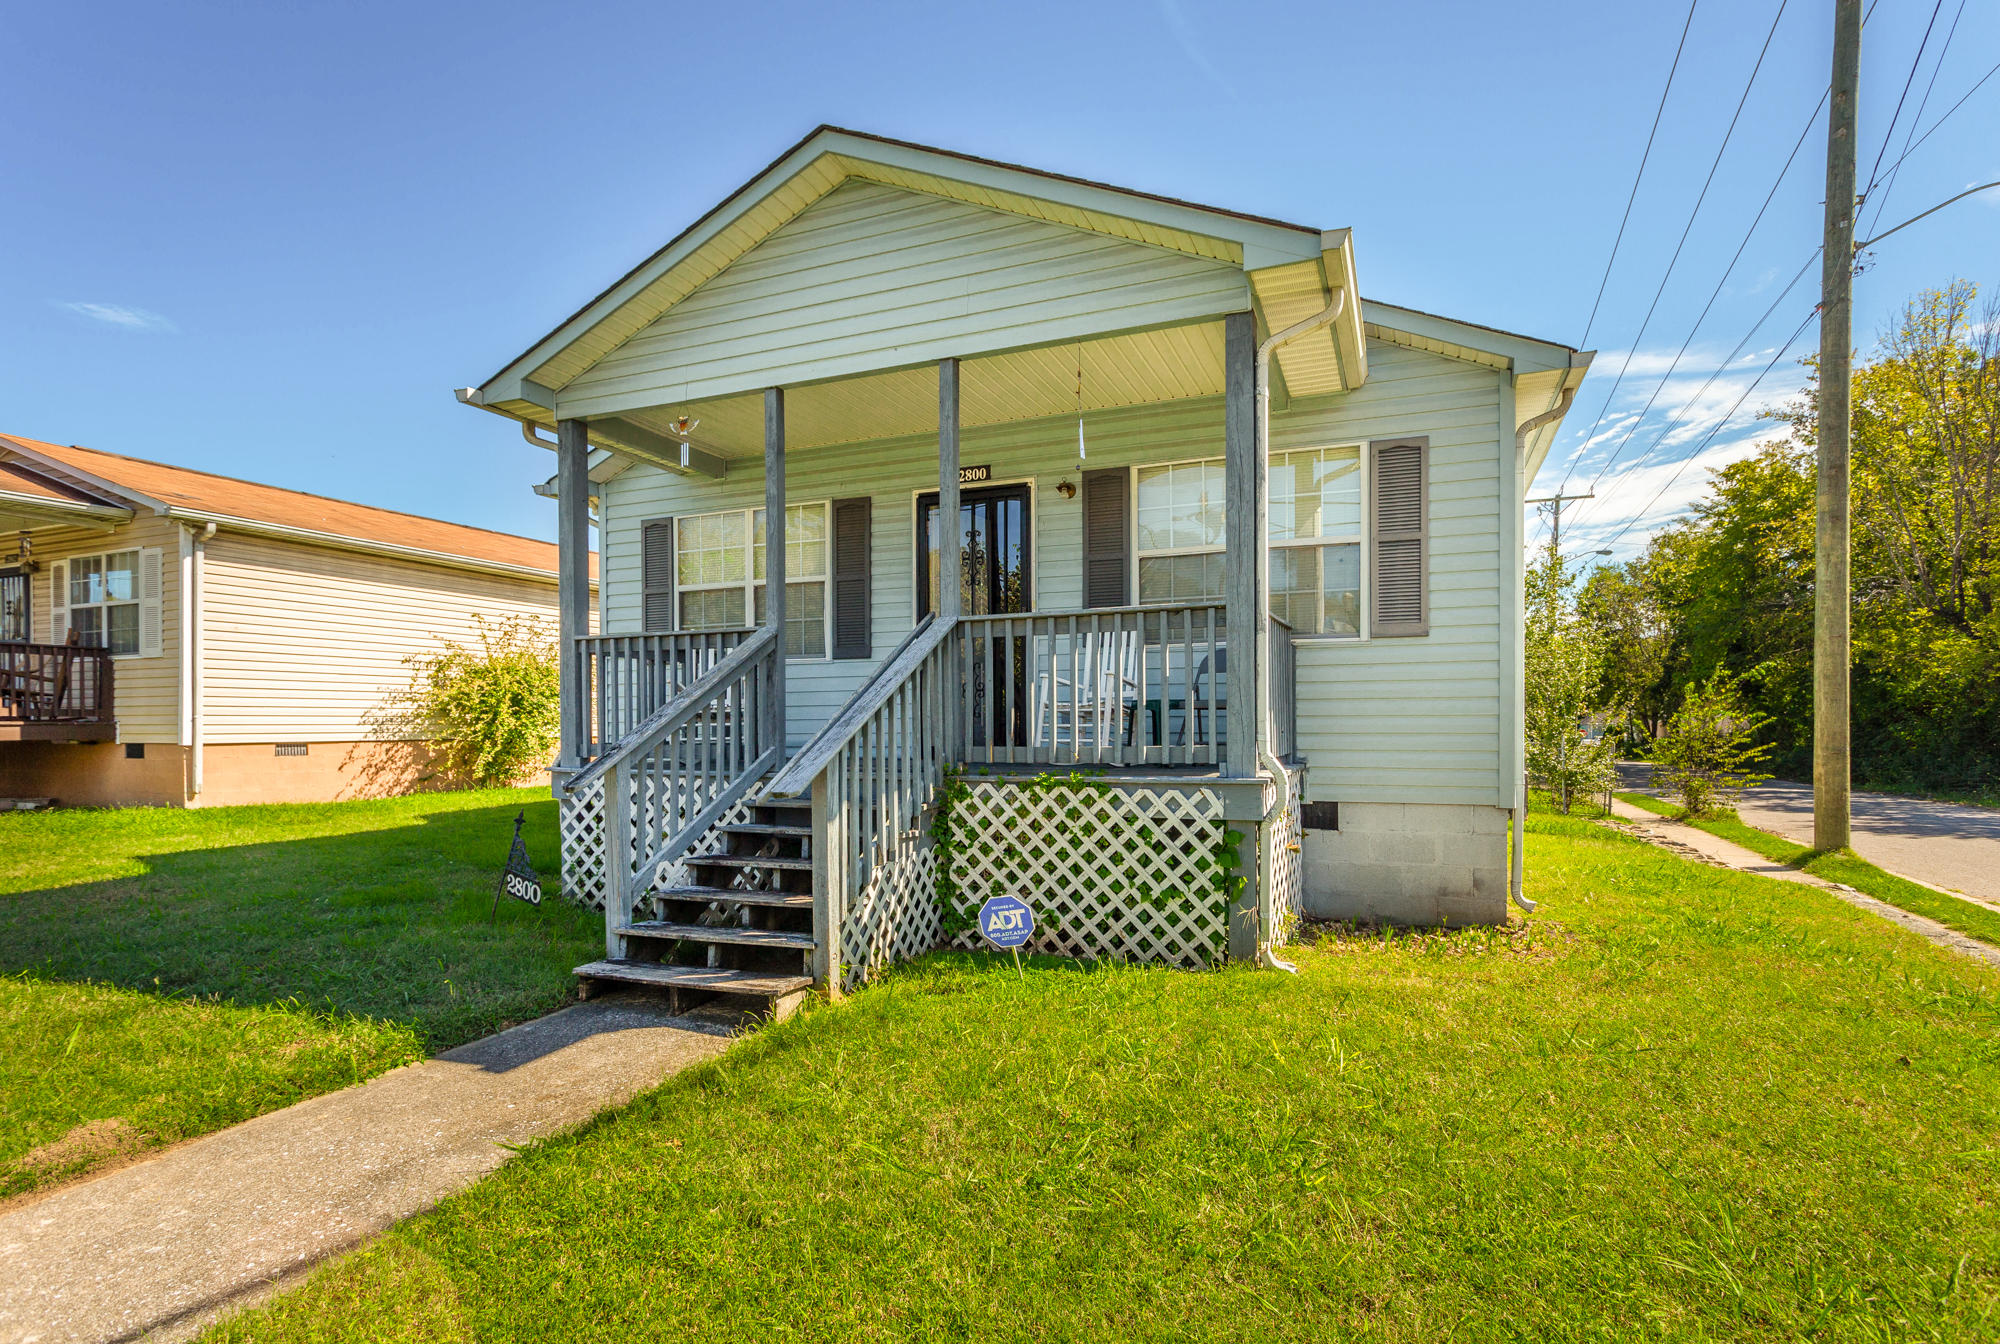 2800 Dodson Ave, Chattanooga, TN 37406